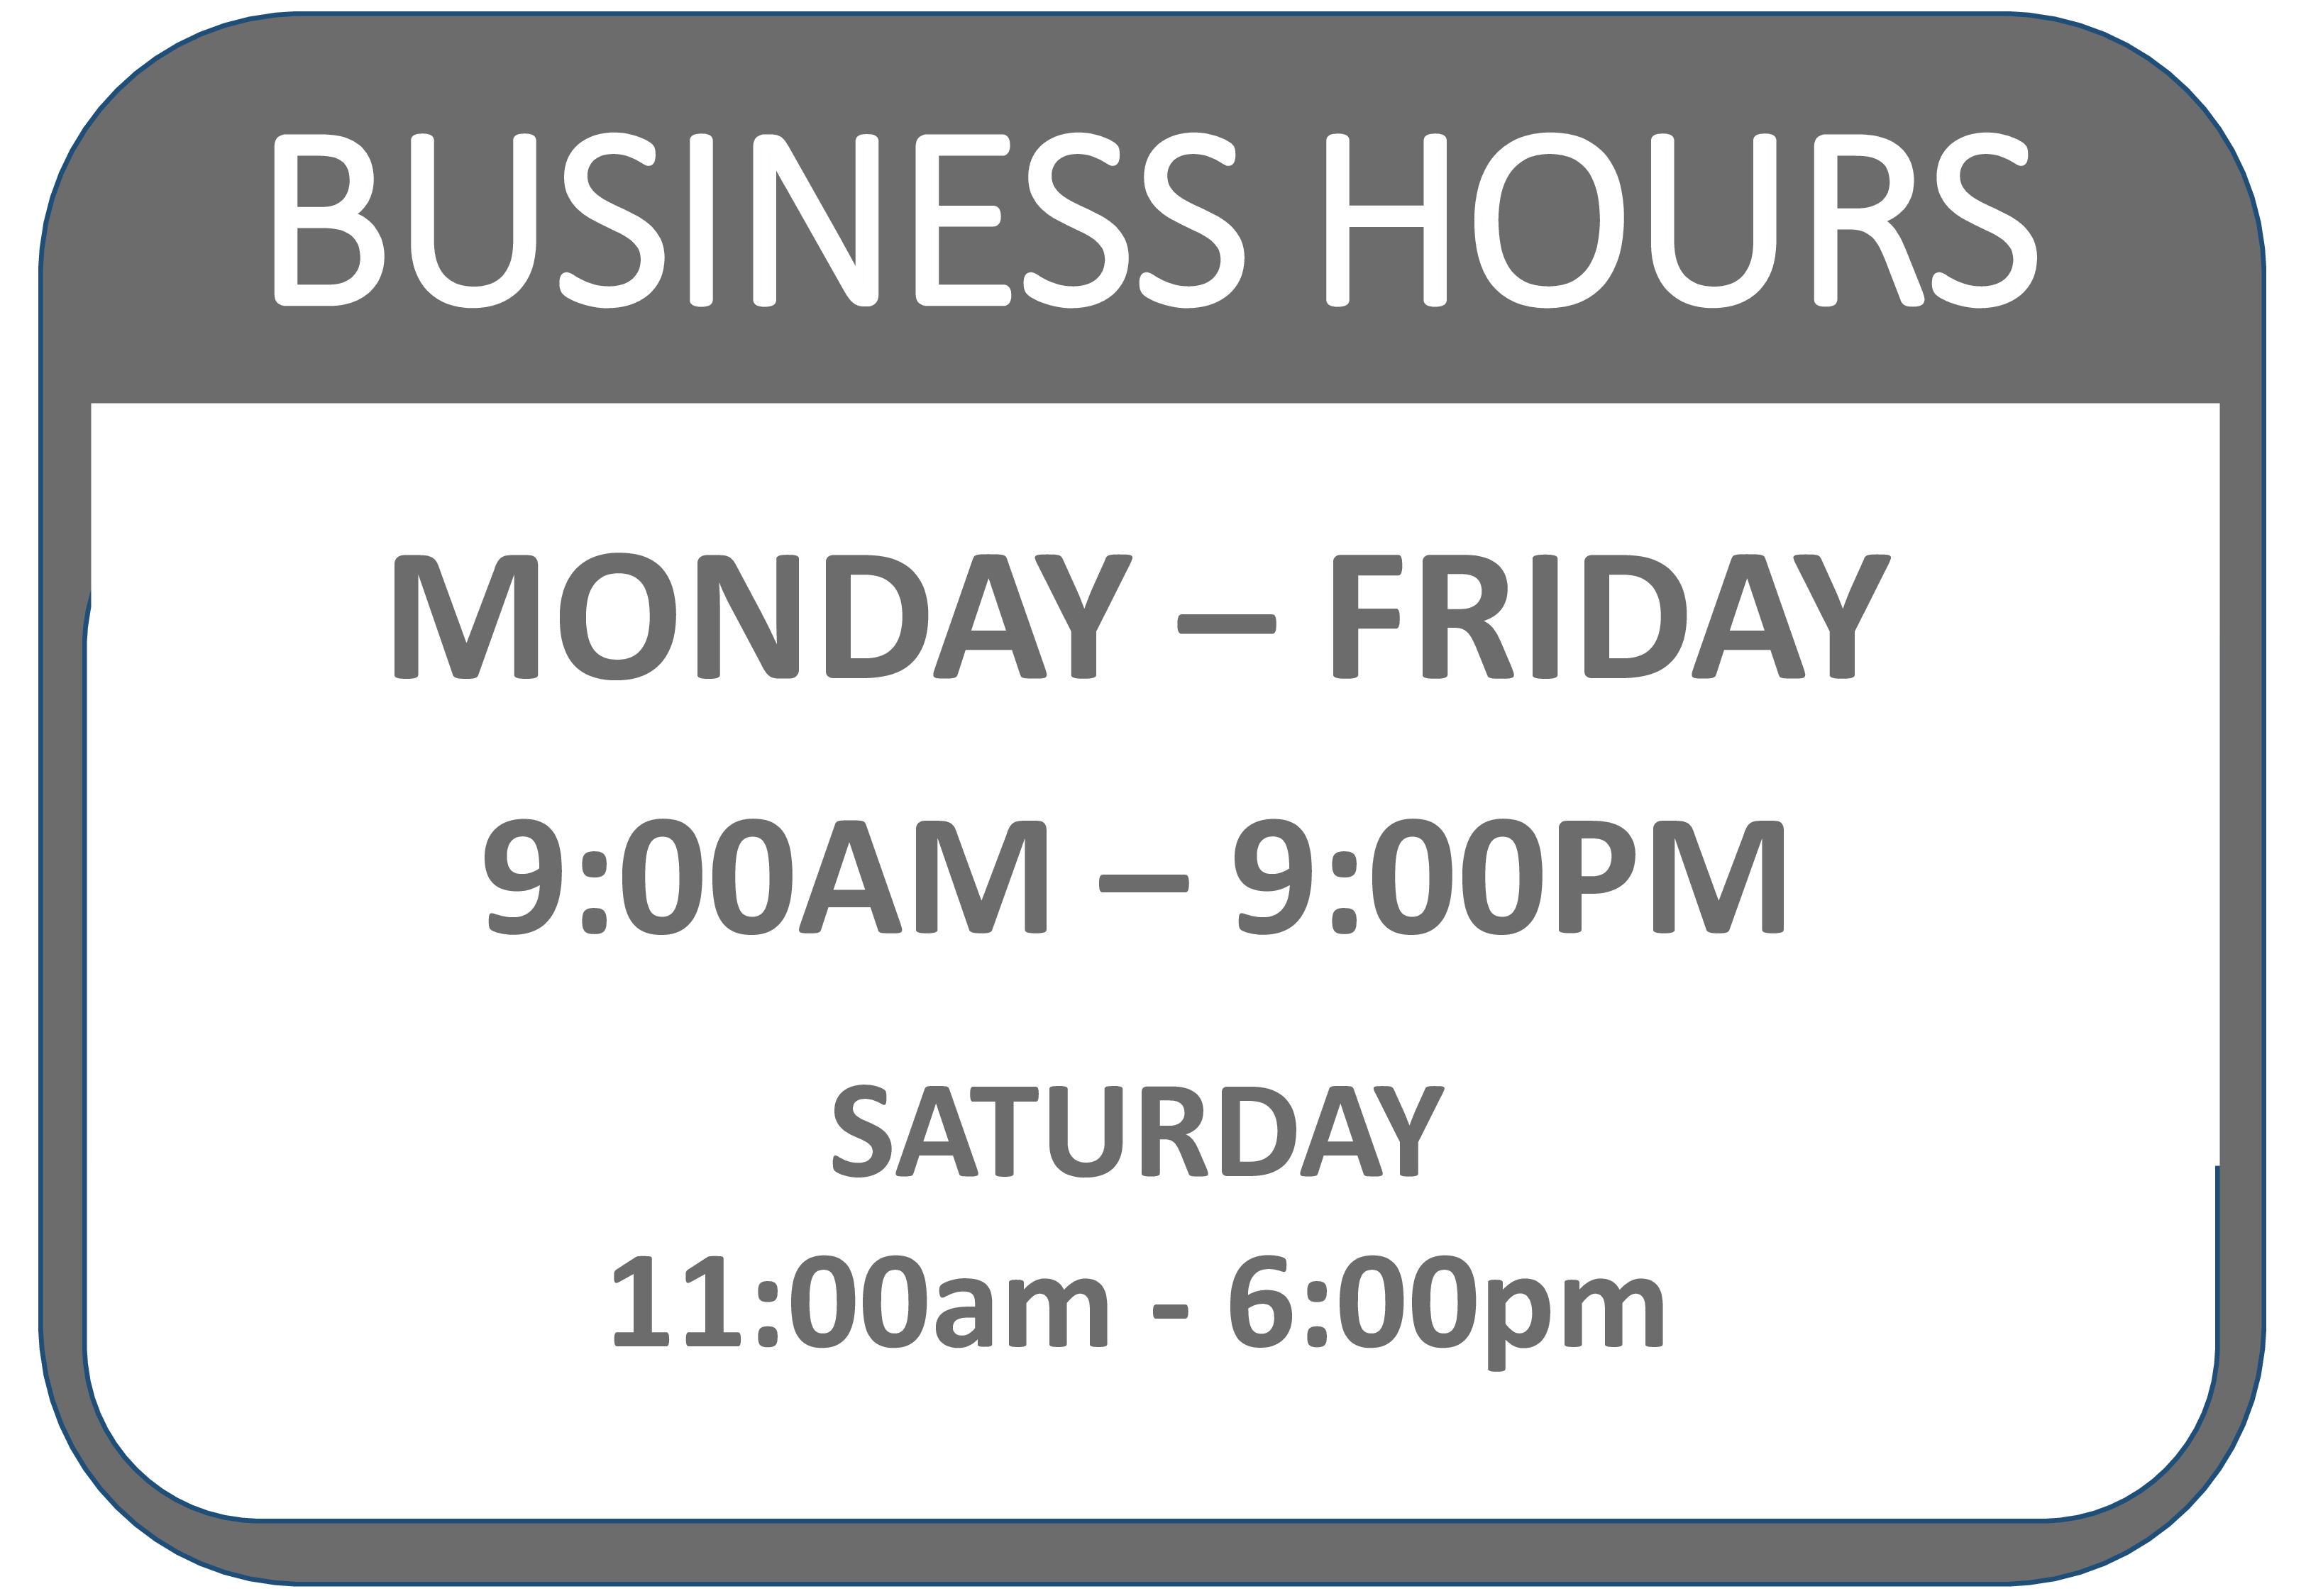 free business hours signage templates at. Black Bedroom Furniture Sets. Home Design Ideas